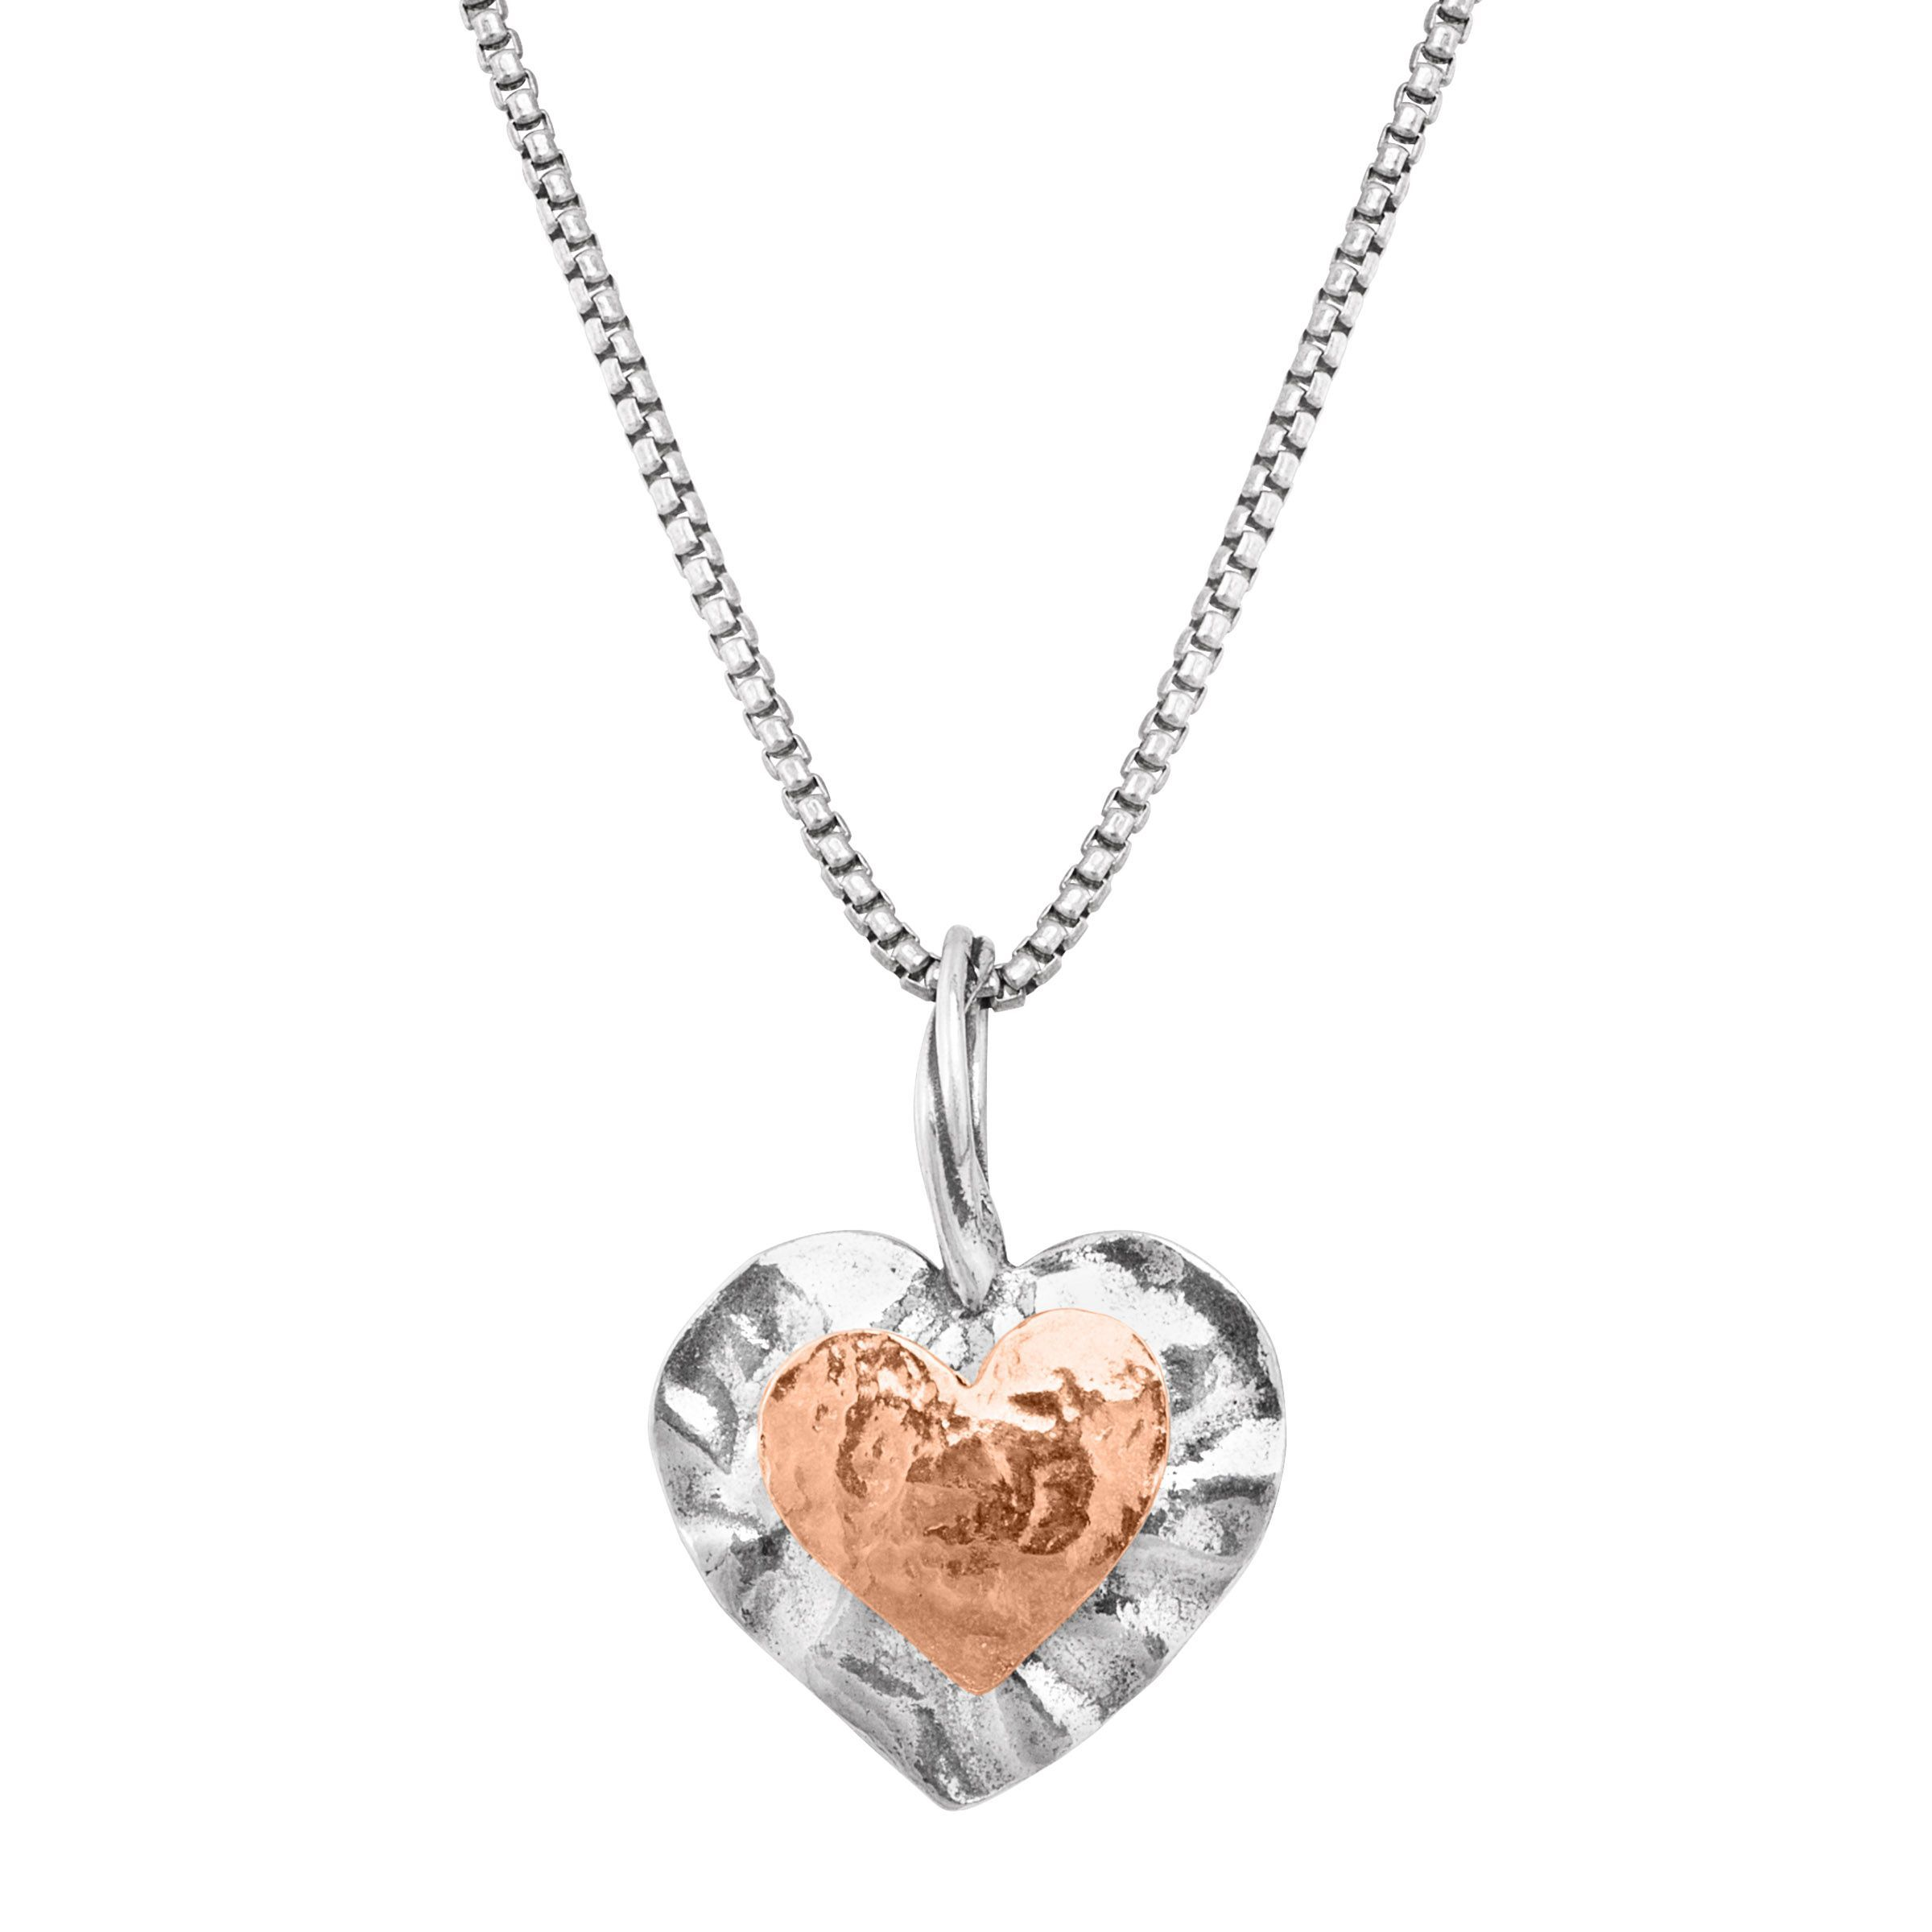 two toned silver and rose gold heart pendant necklace